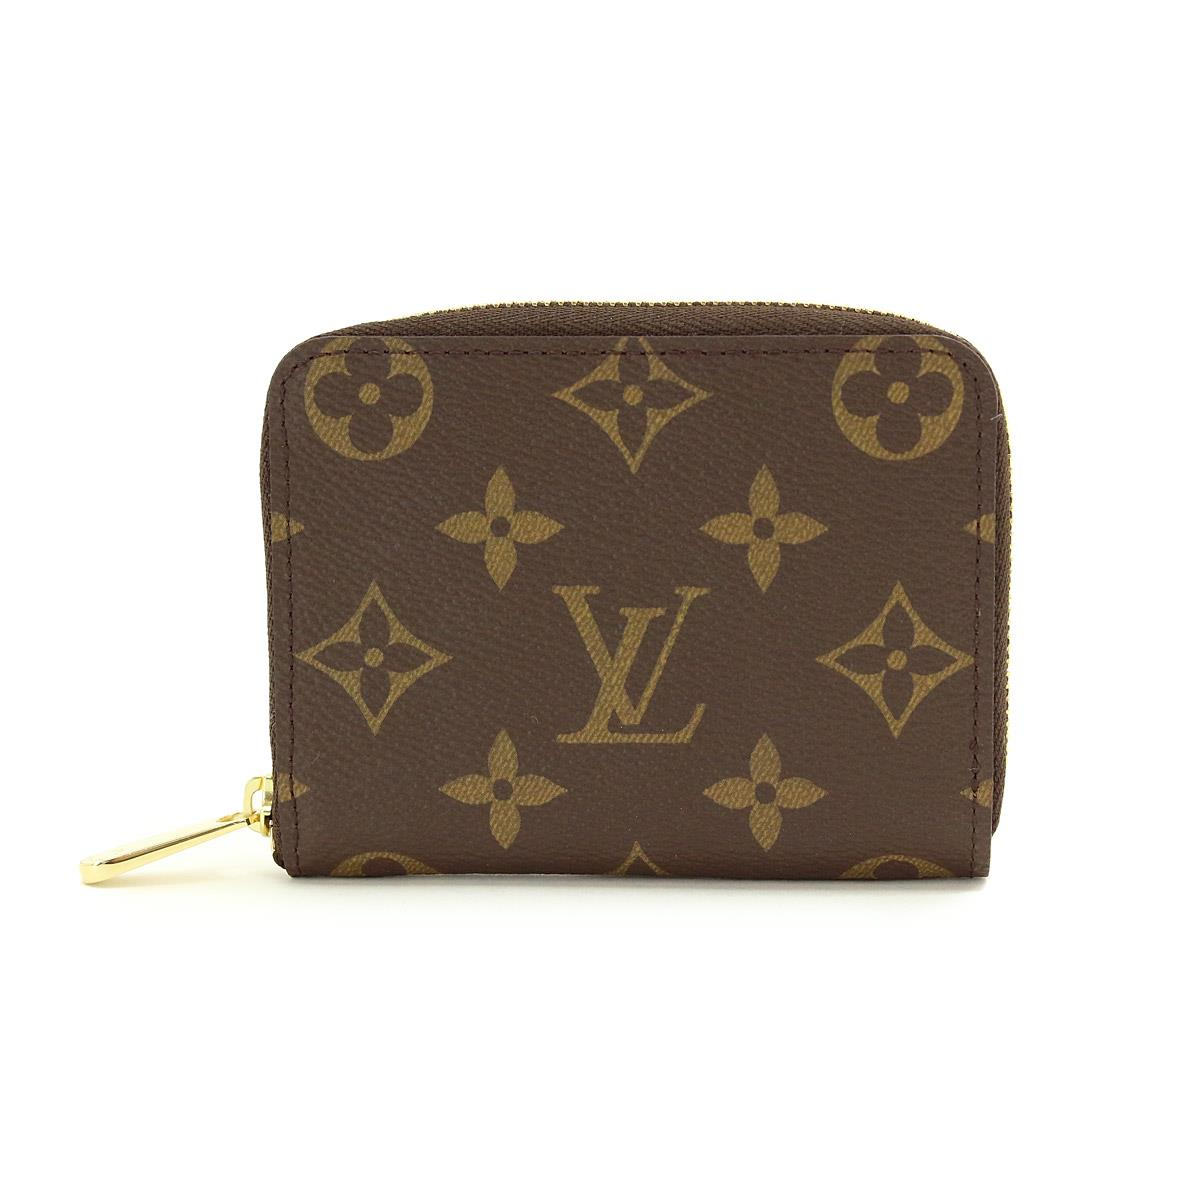 Le Meilleur Auth Louis Vuitton Monogram Zippy Coin Purse Case M60067 Ce Mois Ci